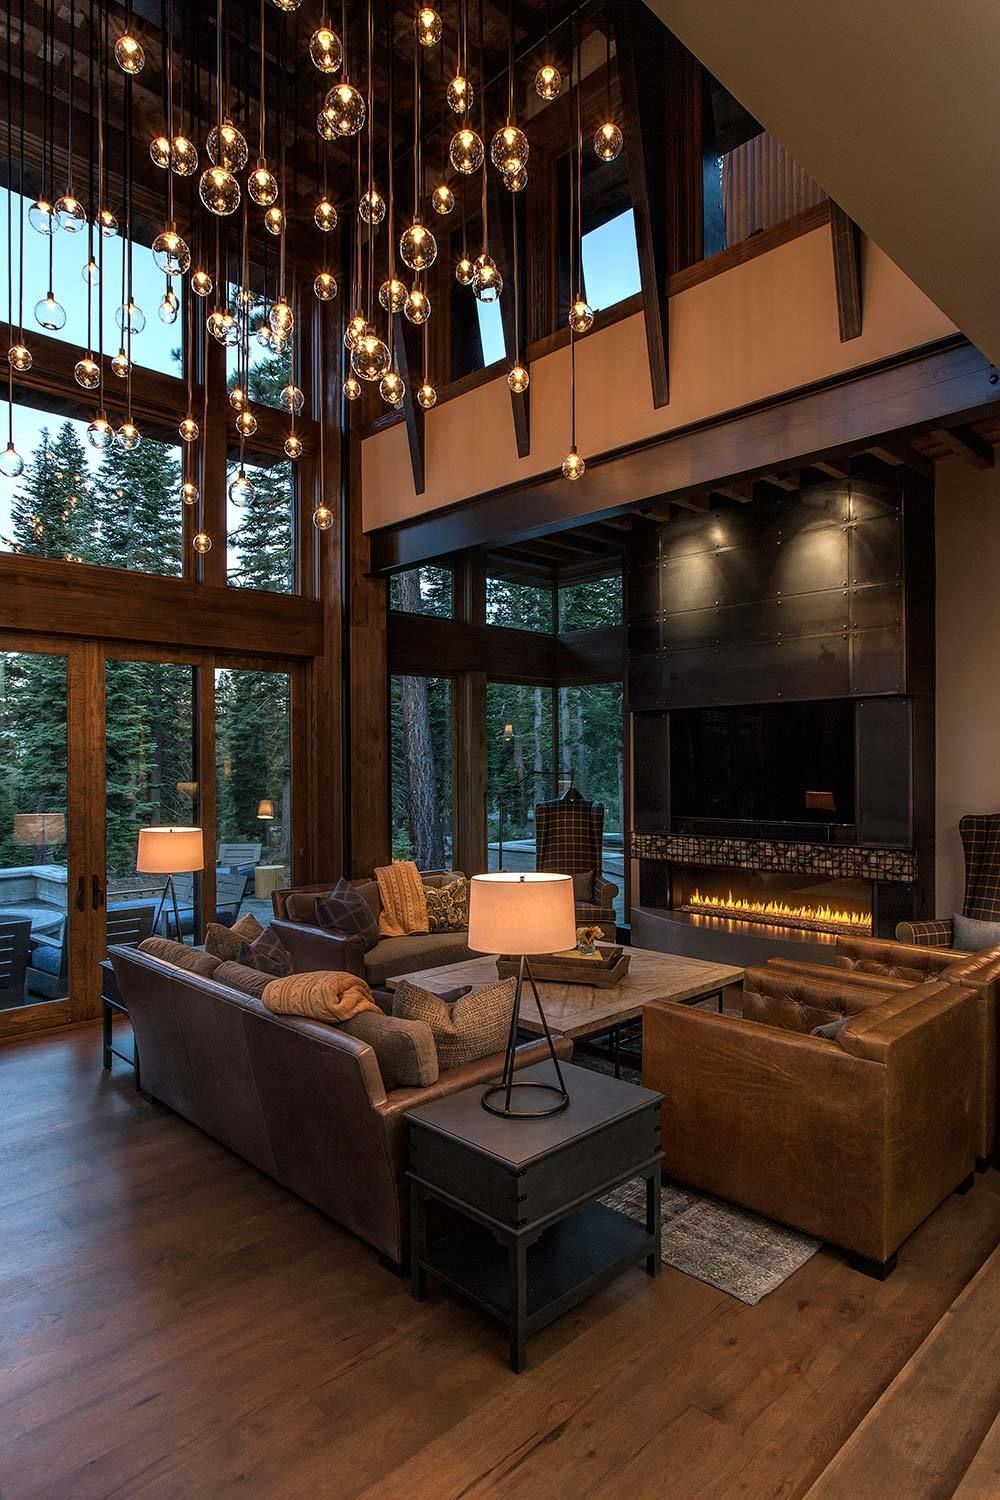 Lake tahoe getaway features contemporary barn aesthetic for Arredamento rustico moderno